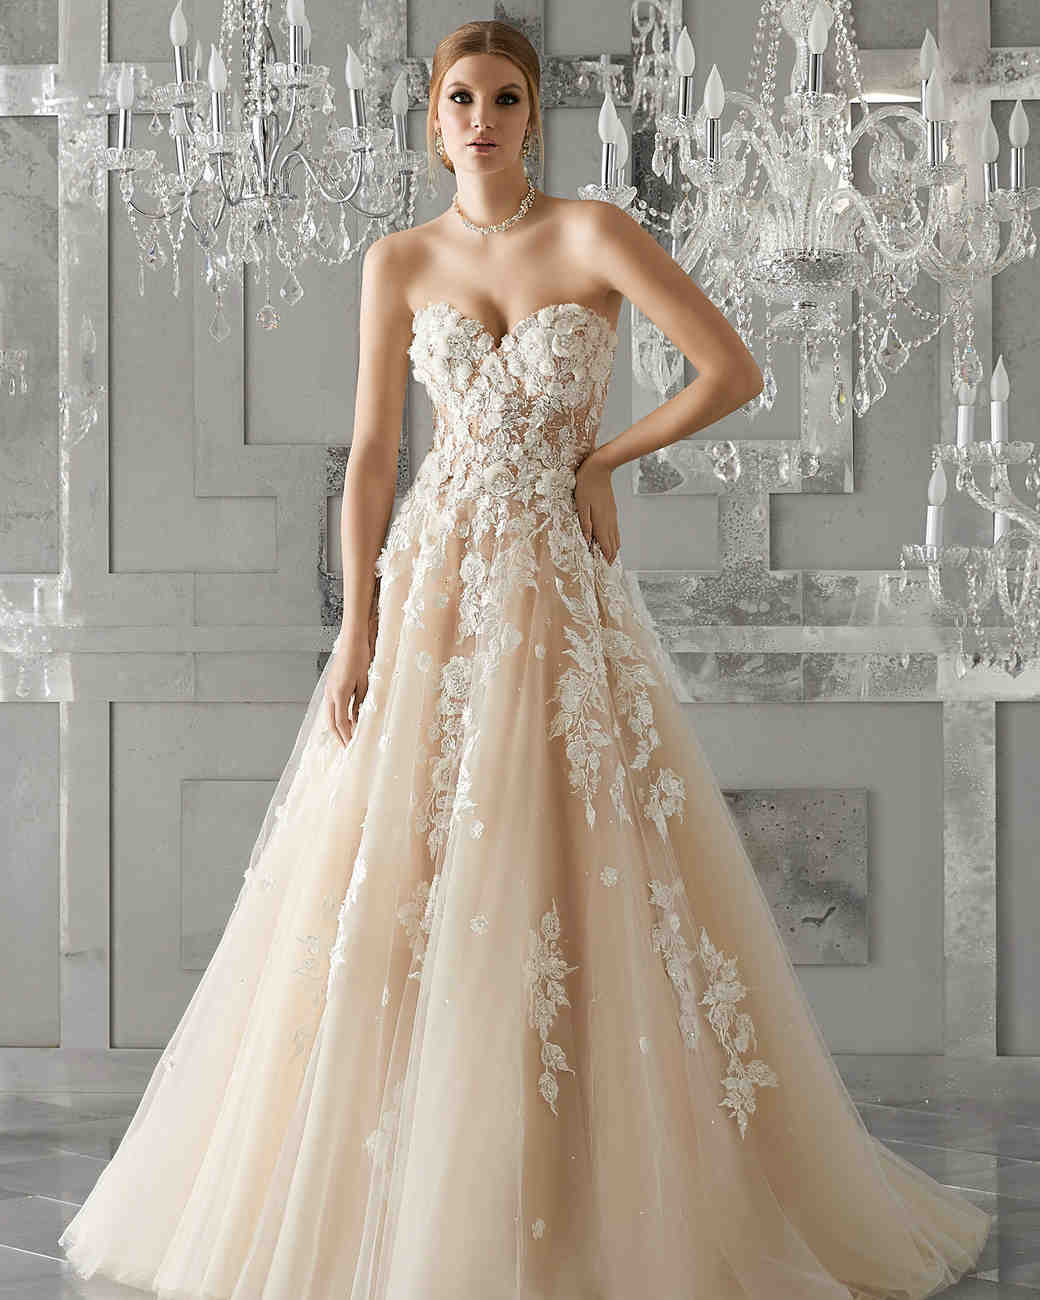 Morilee Wedding Dress Spring 2018 Sweetheart Trailing Fl Embellishments